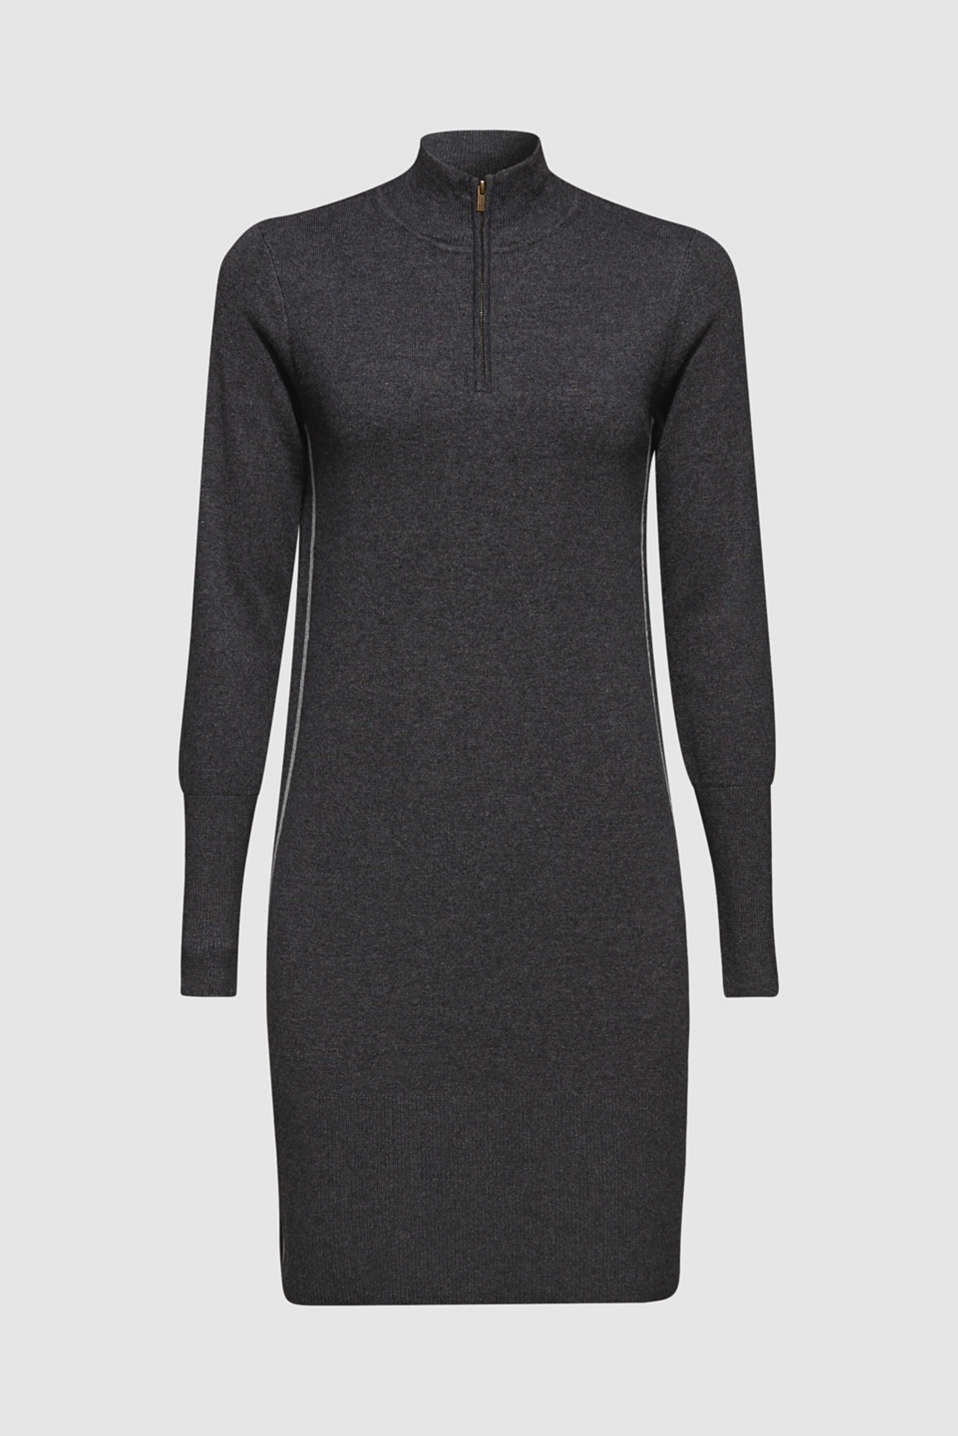 Knit dress with a zip-up band collar, GUNMETAL 5, detail image number 8